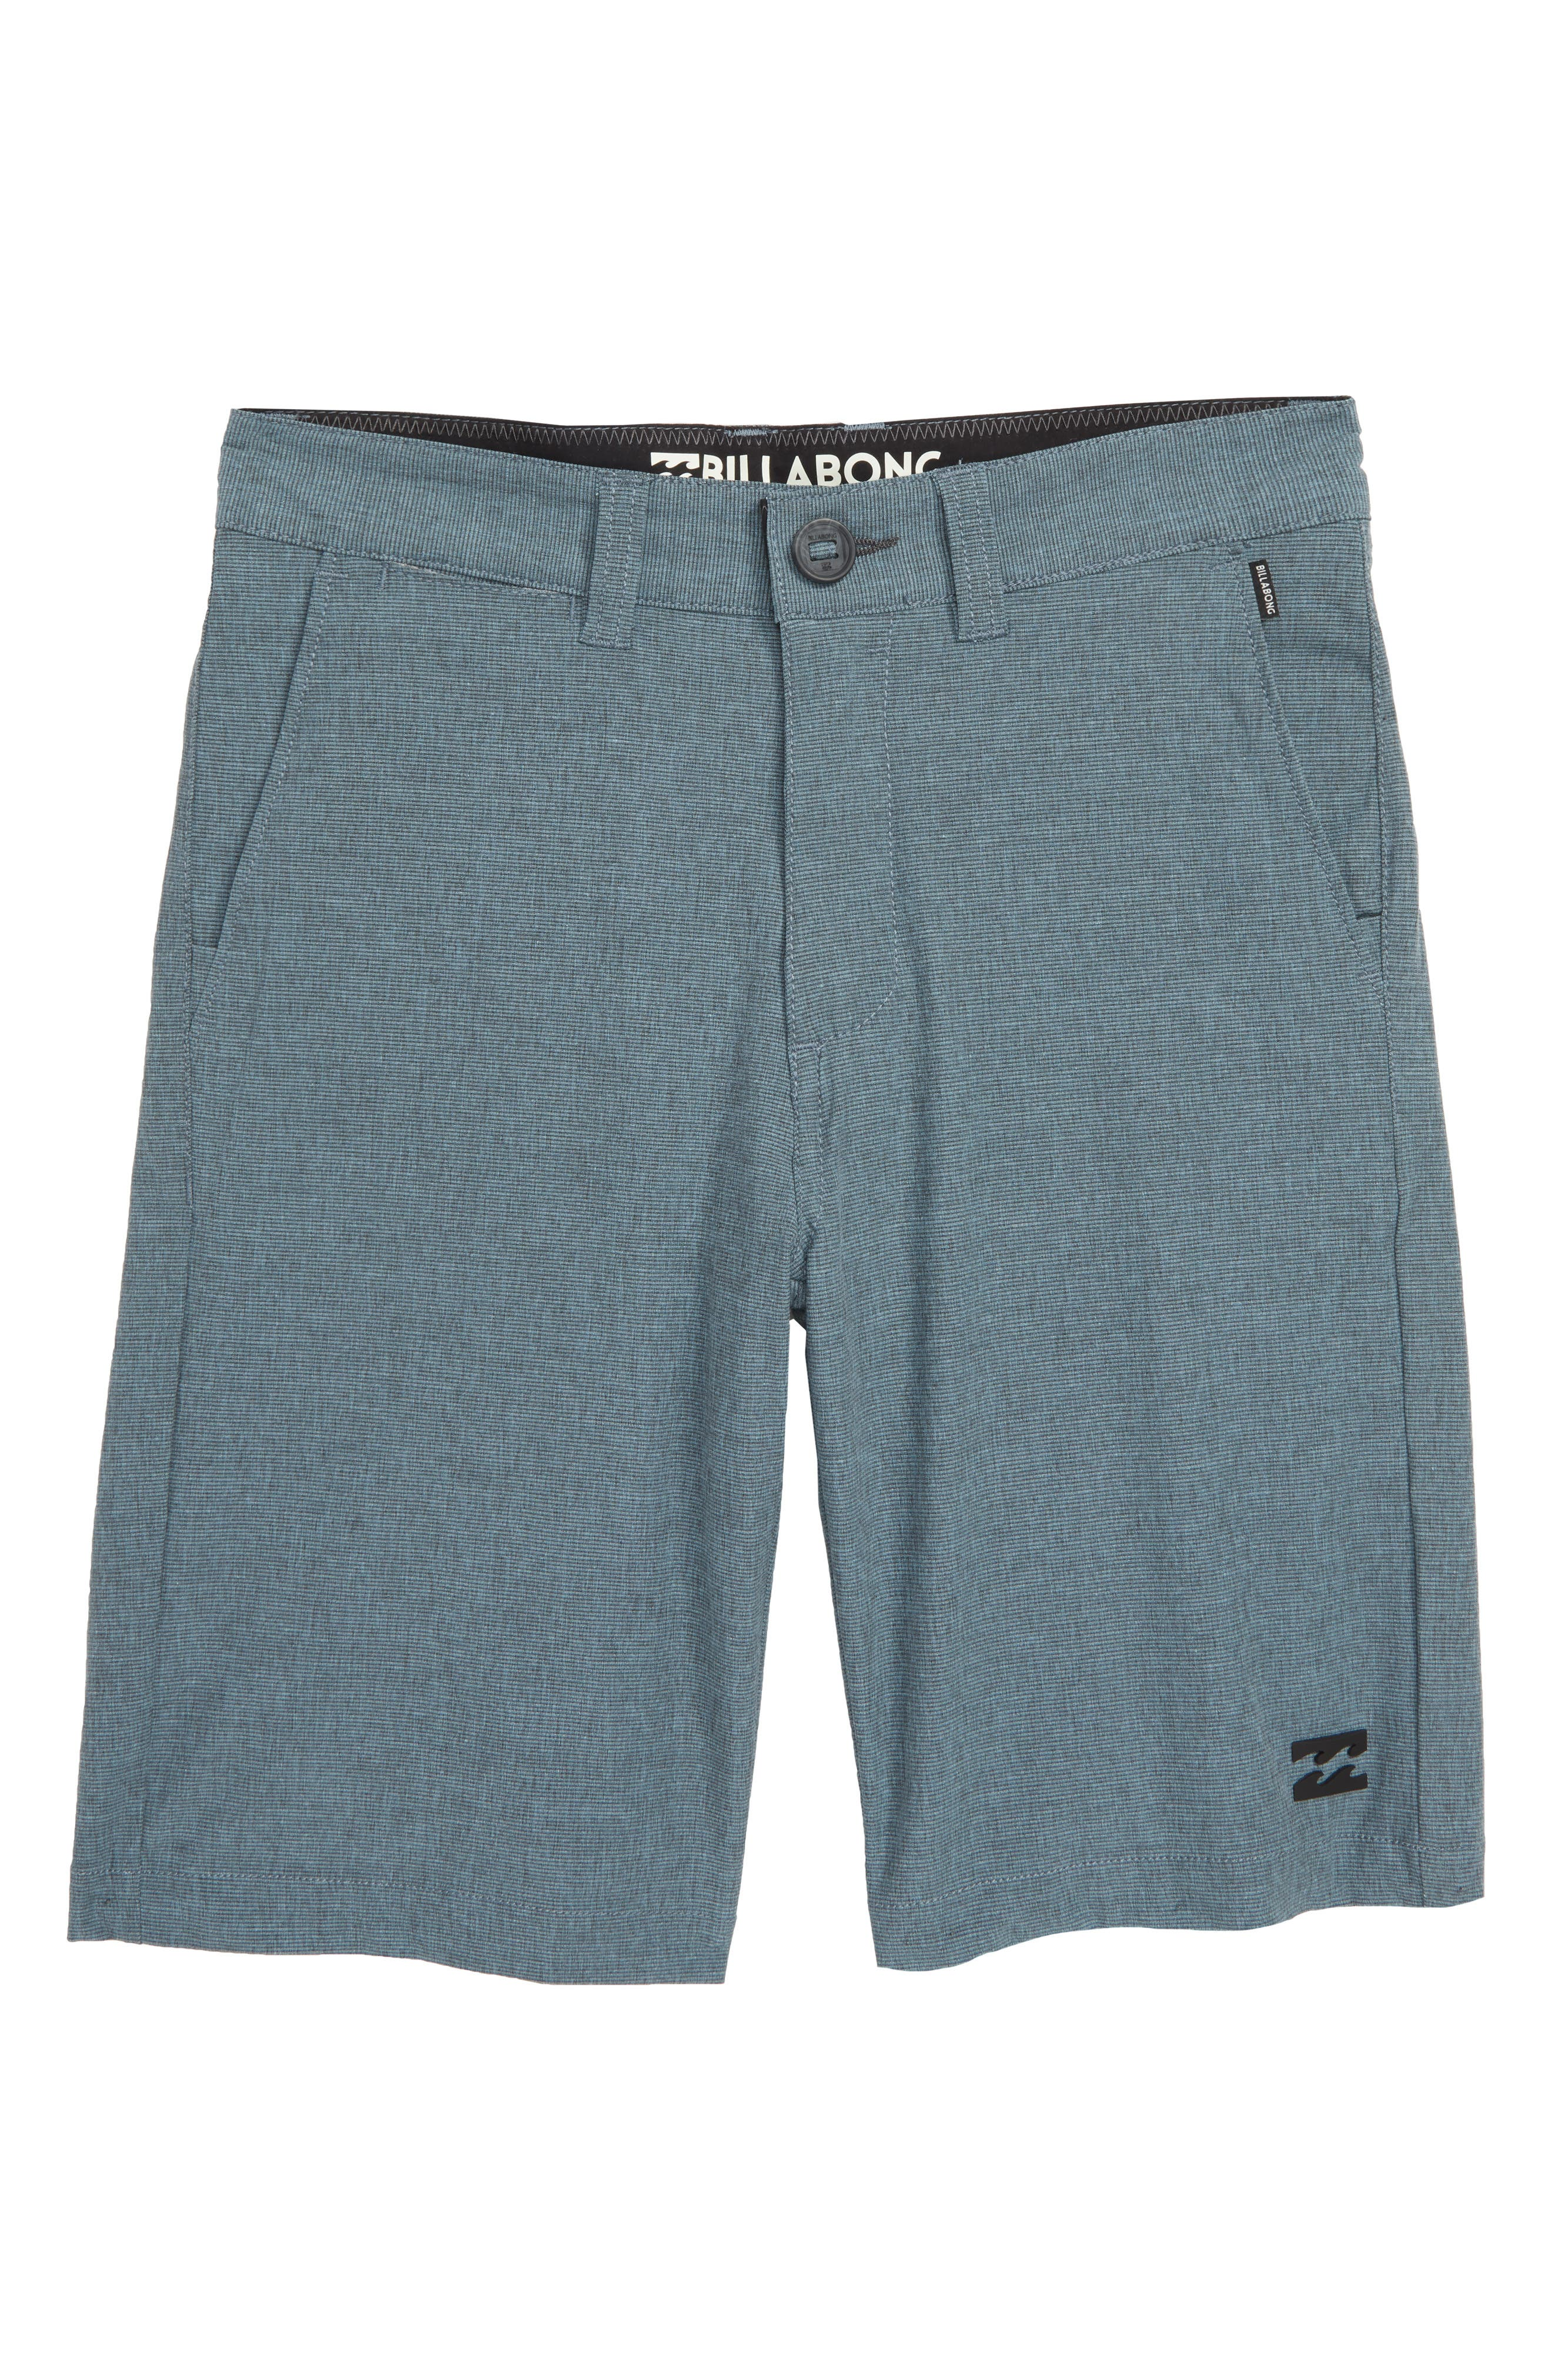 Crossfire X Hybrid Shorts,                         Main,                         color, LAGOON